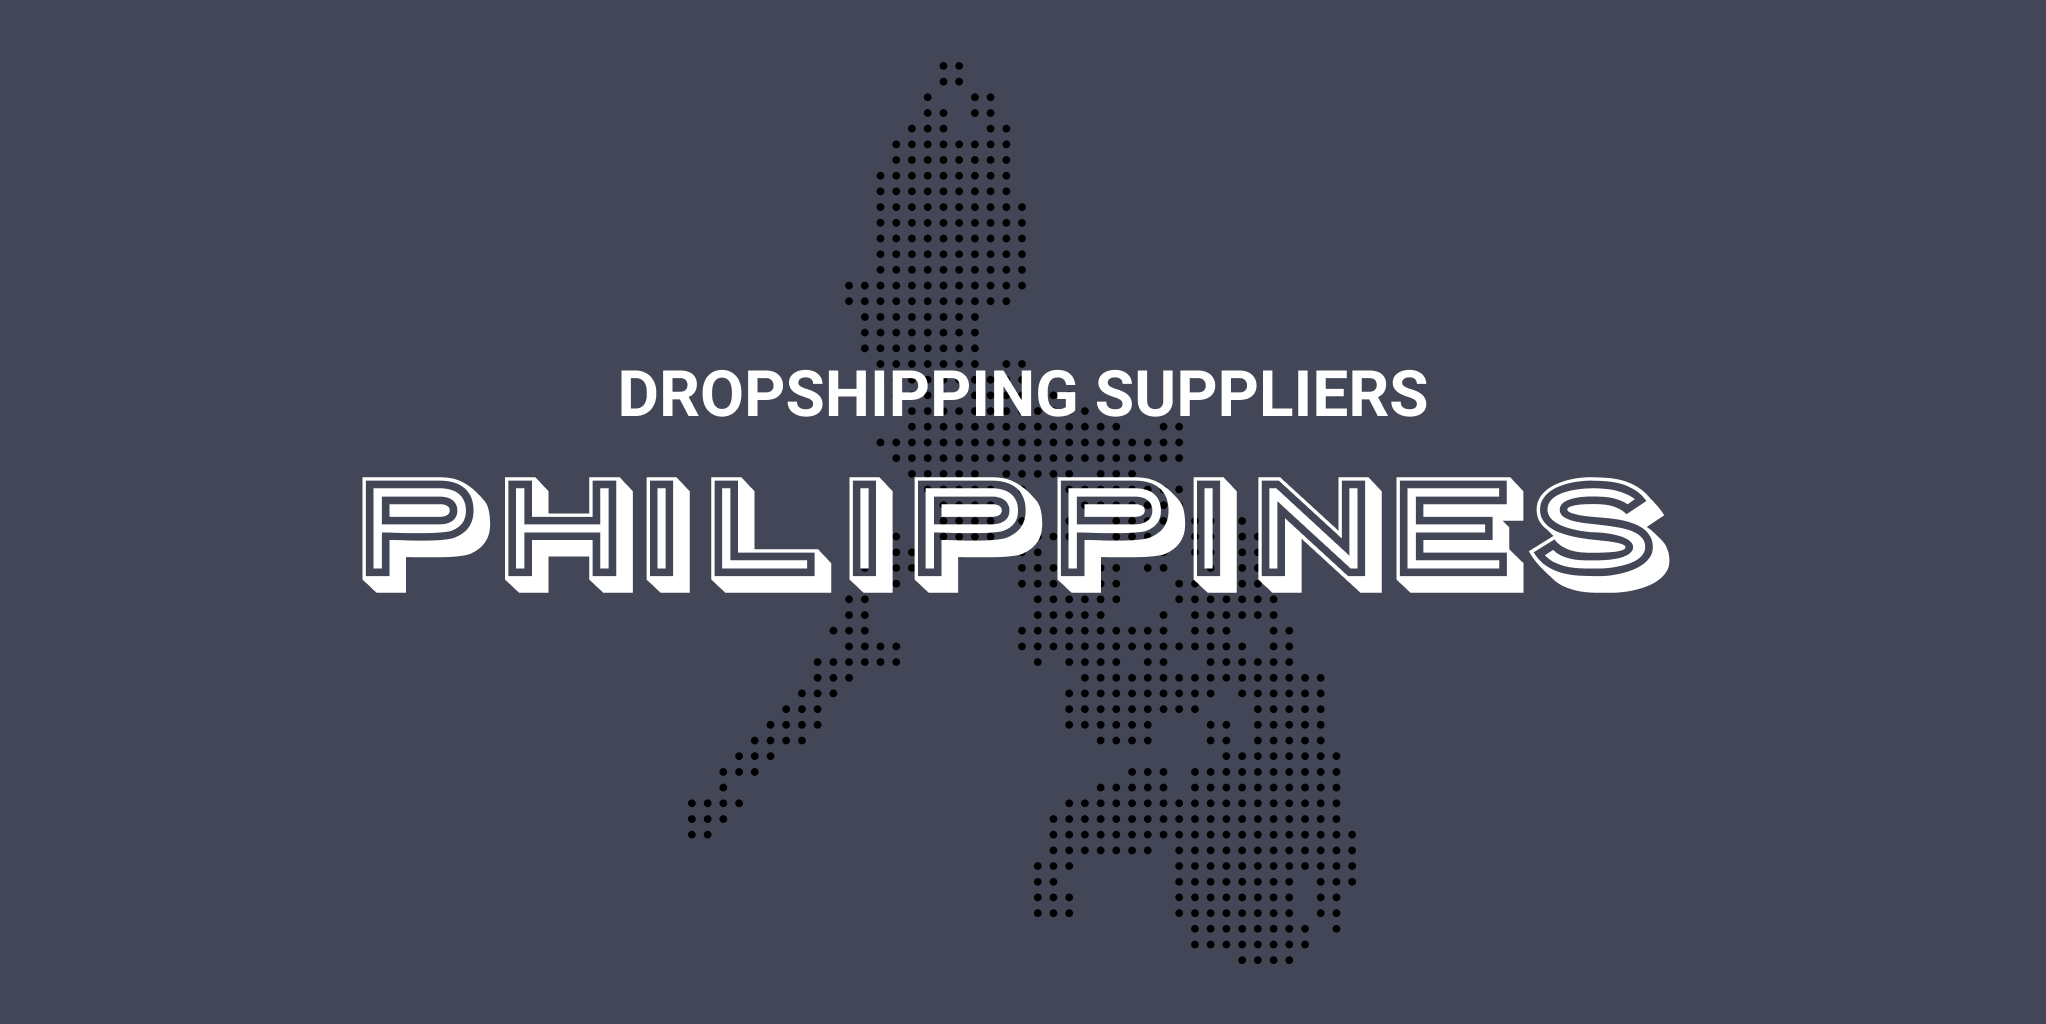 dropshipping suppliers philippines